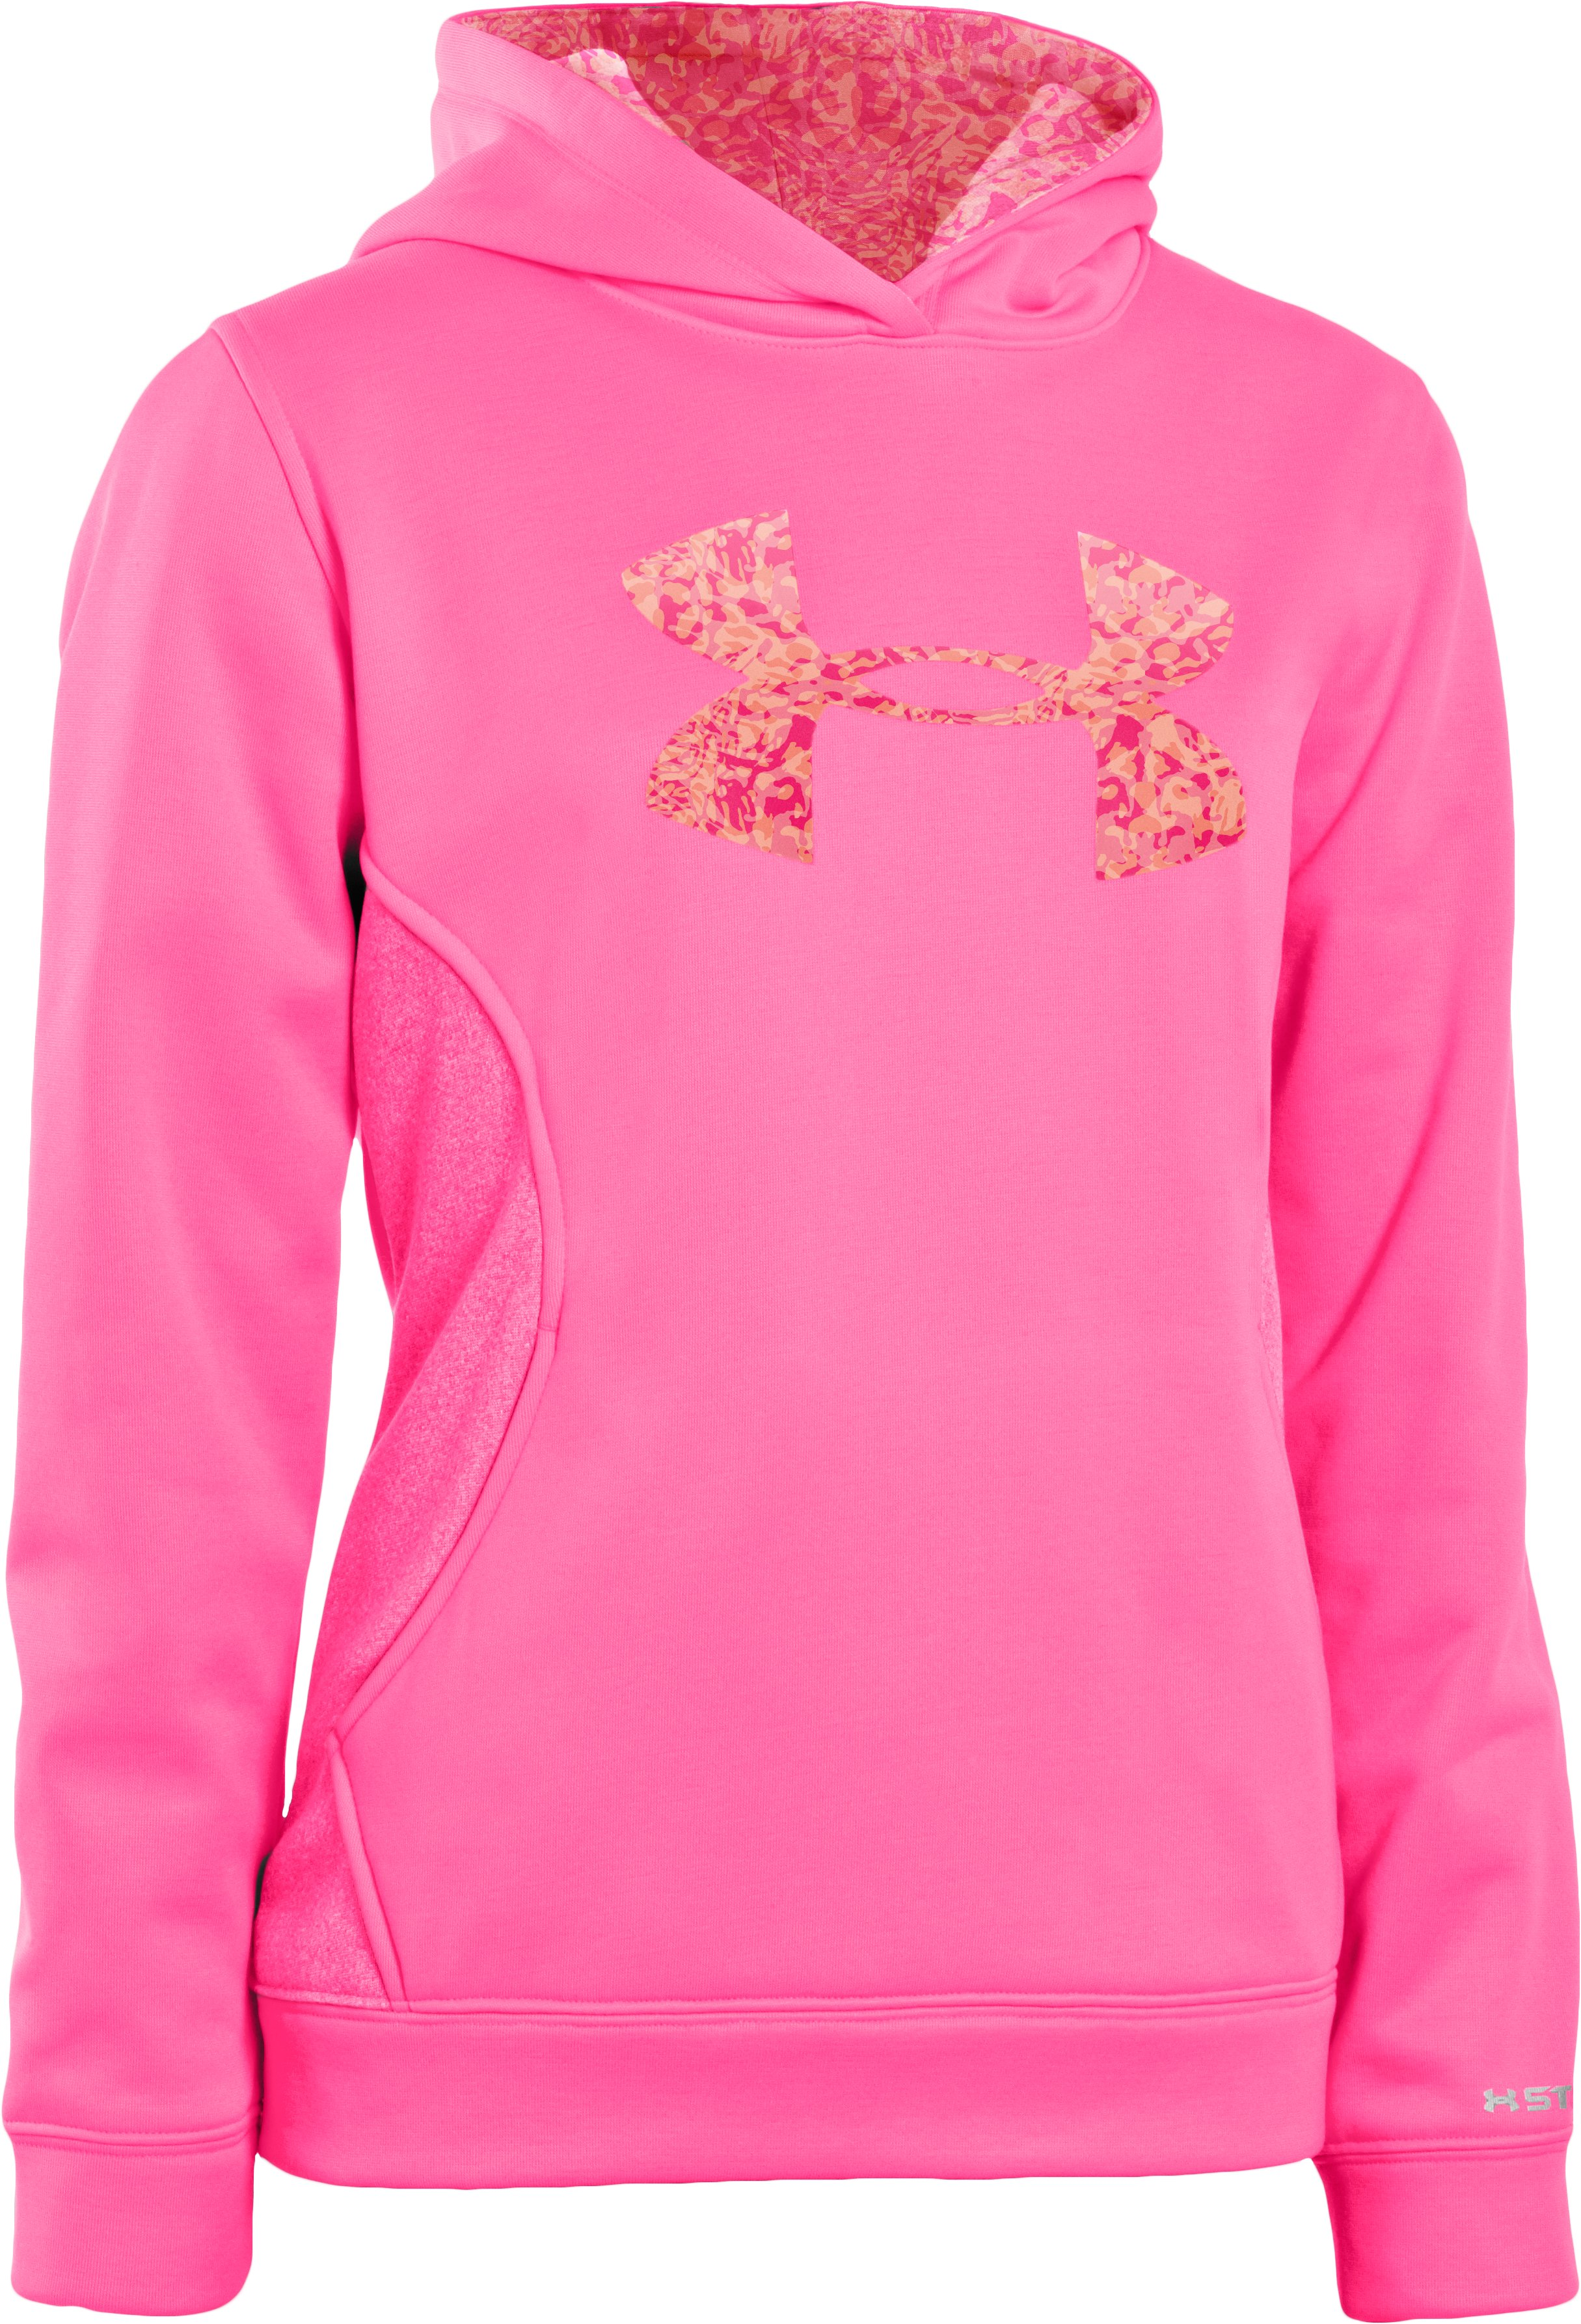 Girls' Armour® Fleece Storm Big Logo Hoodie, PINKADELIC, undefined